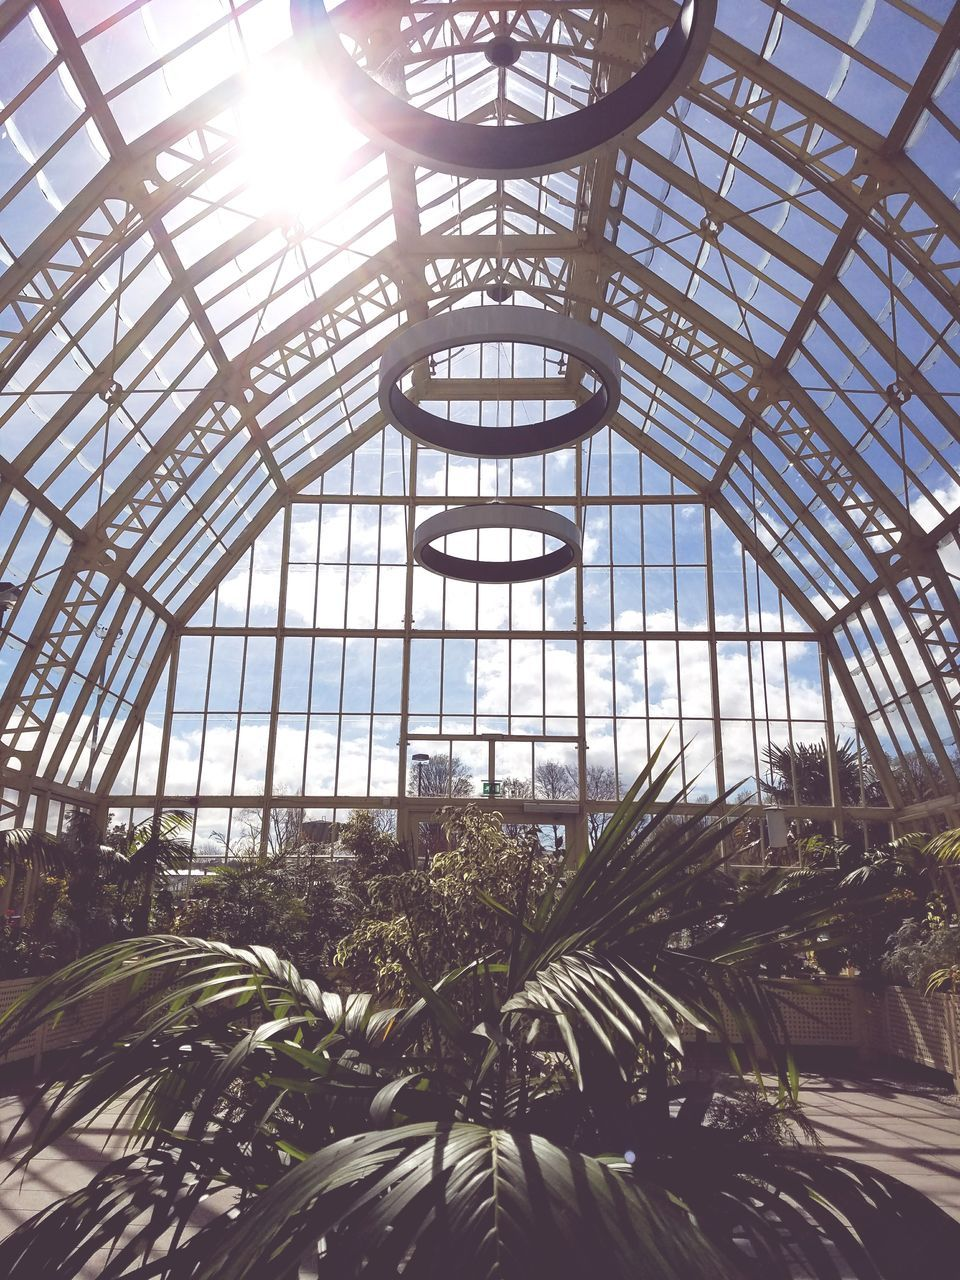 plant, growth, greenhouse, indoors, day, no people, palm tree, low angle view, tree, nature, plant nursery, architecture, sky